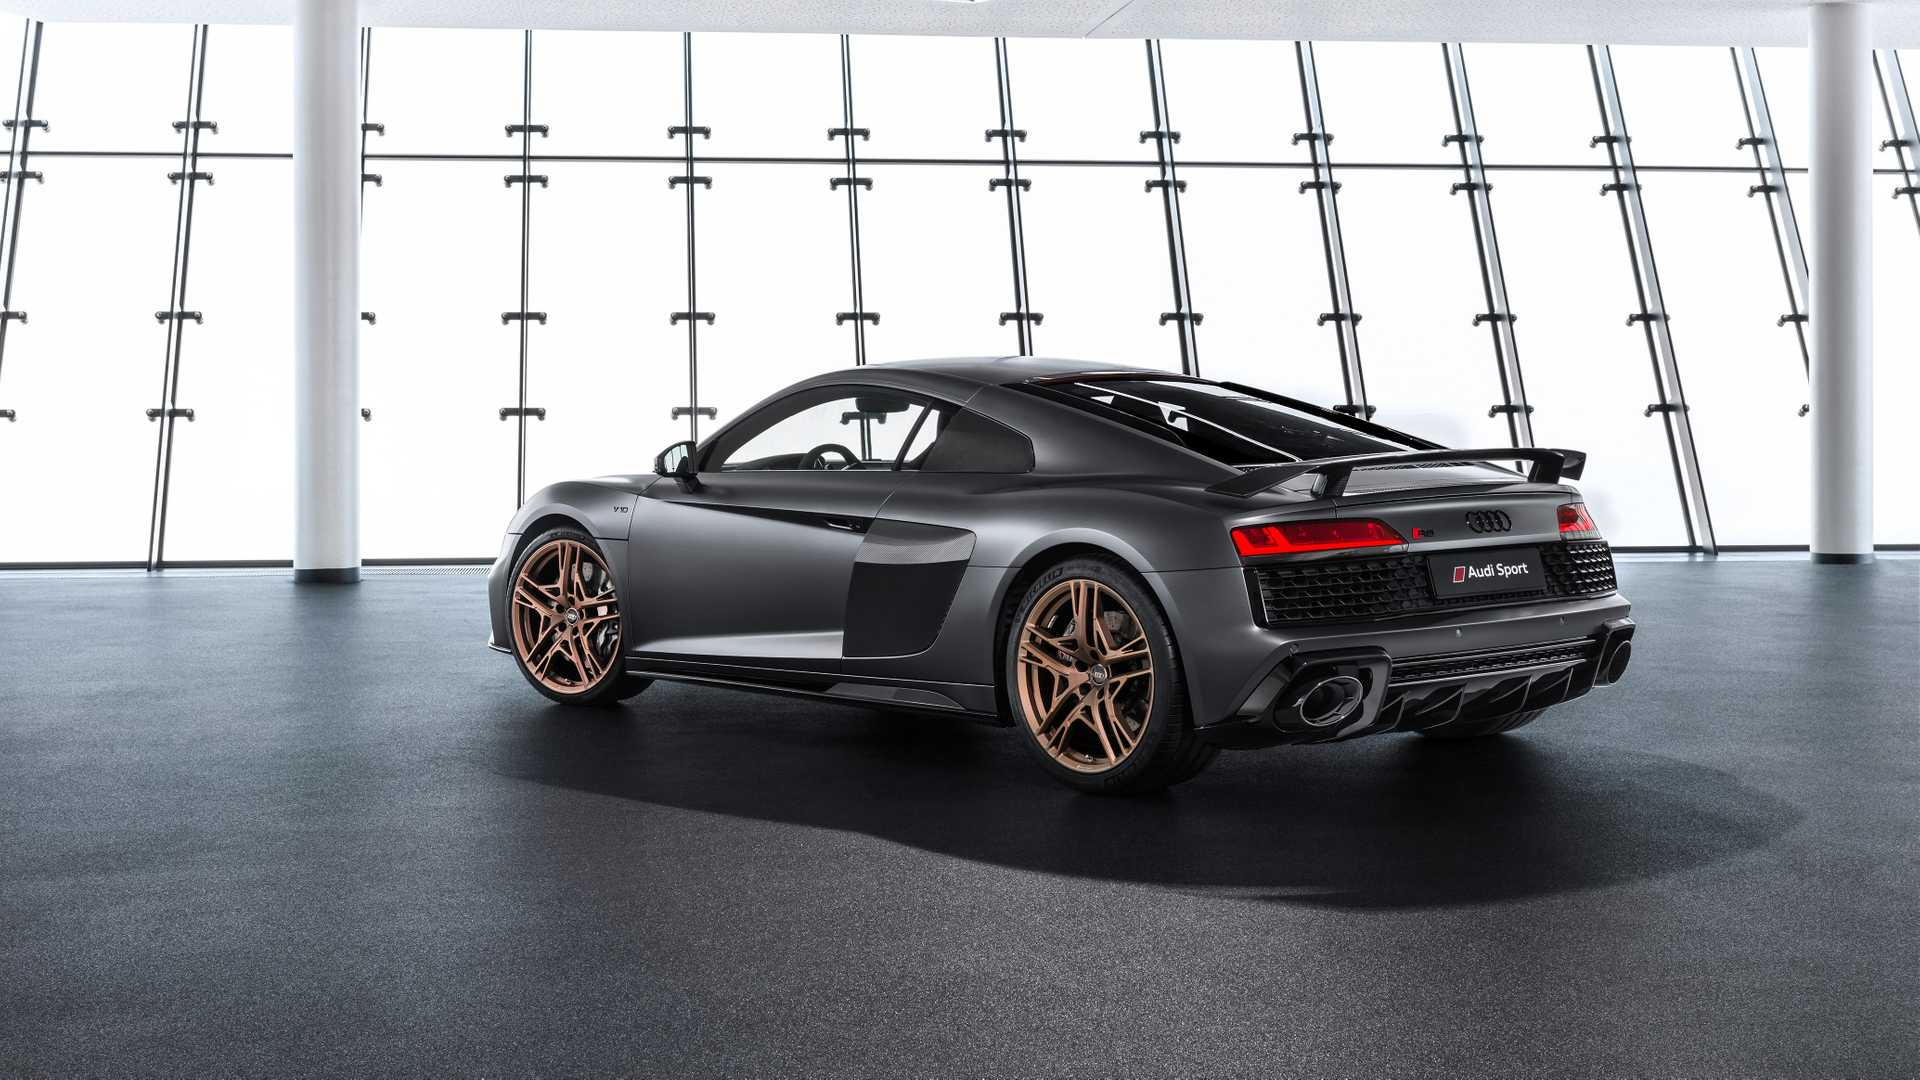 2020 Audi R8 V10 Decennium Costs An Eye Watering 214995